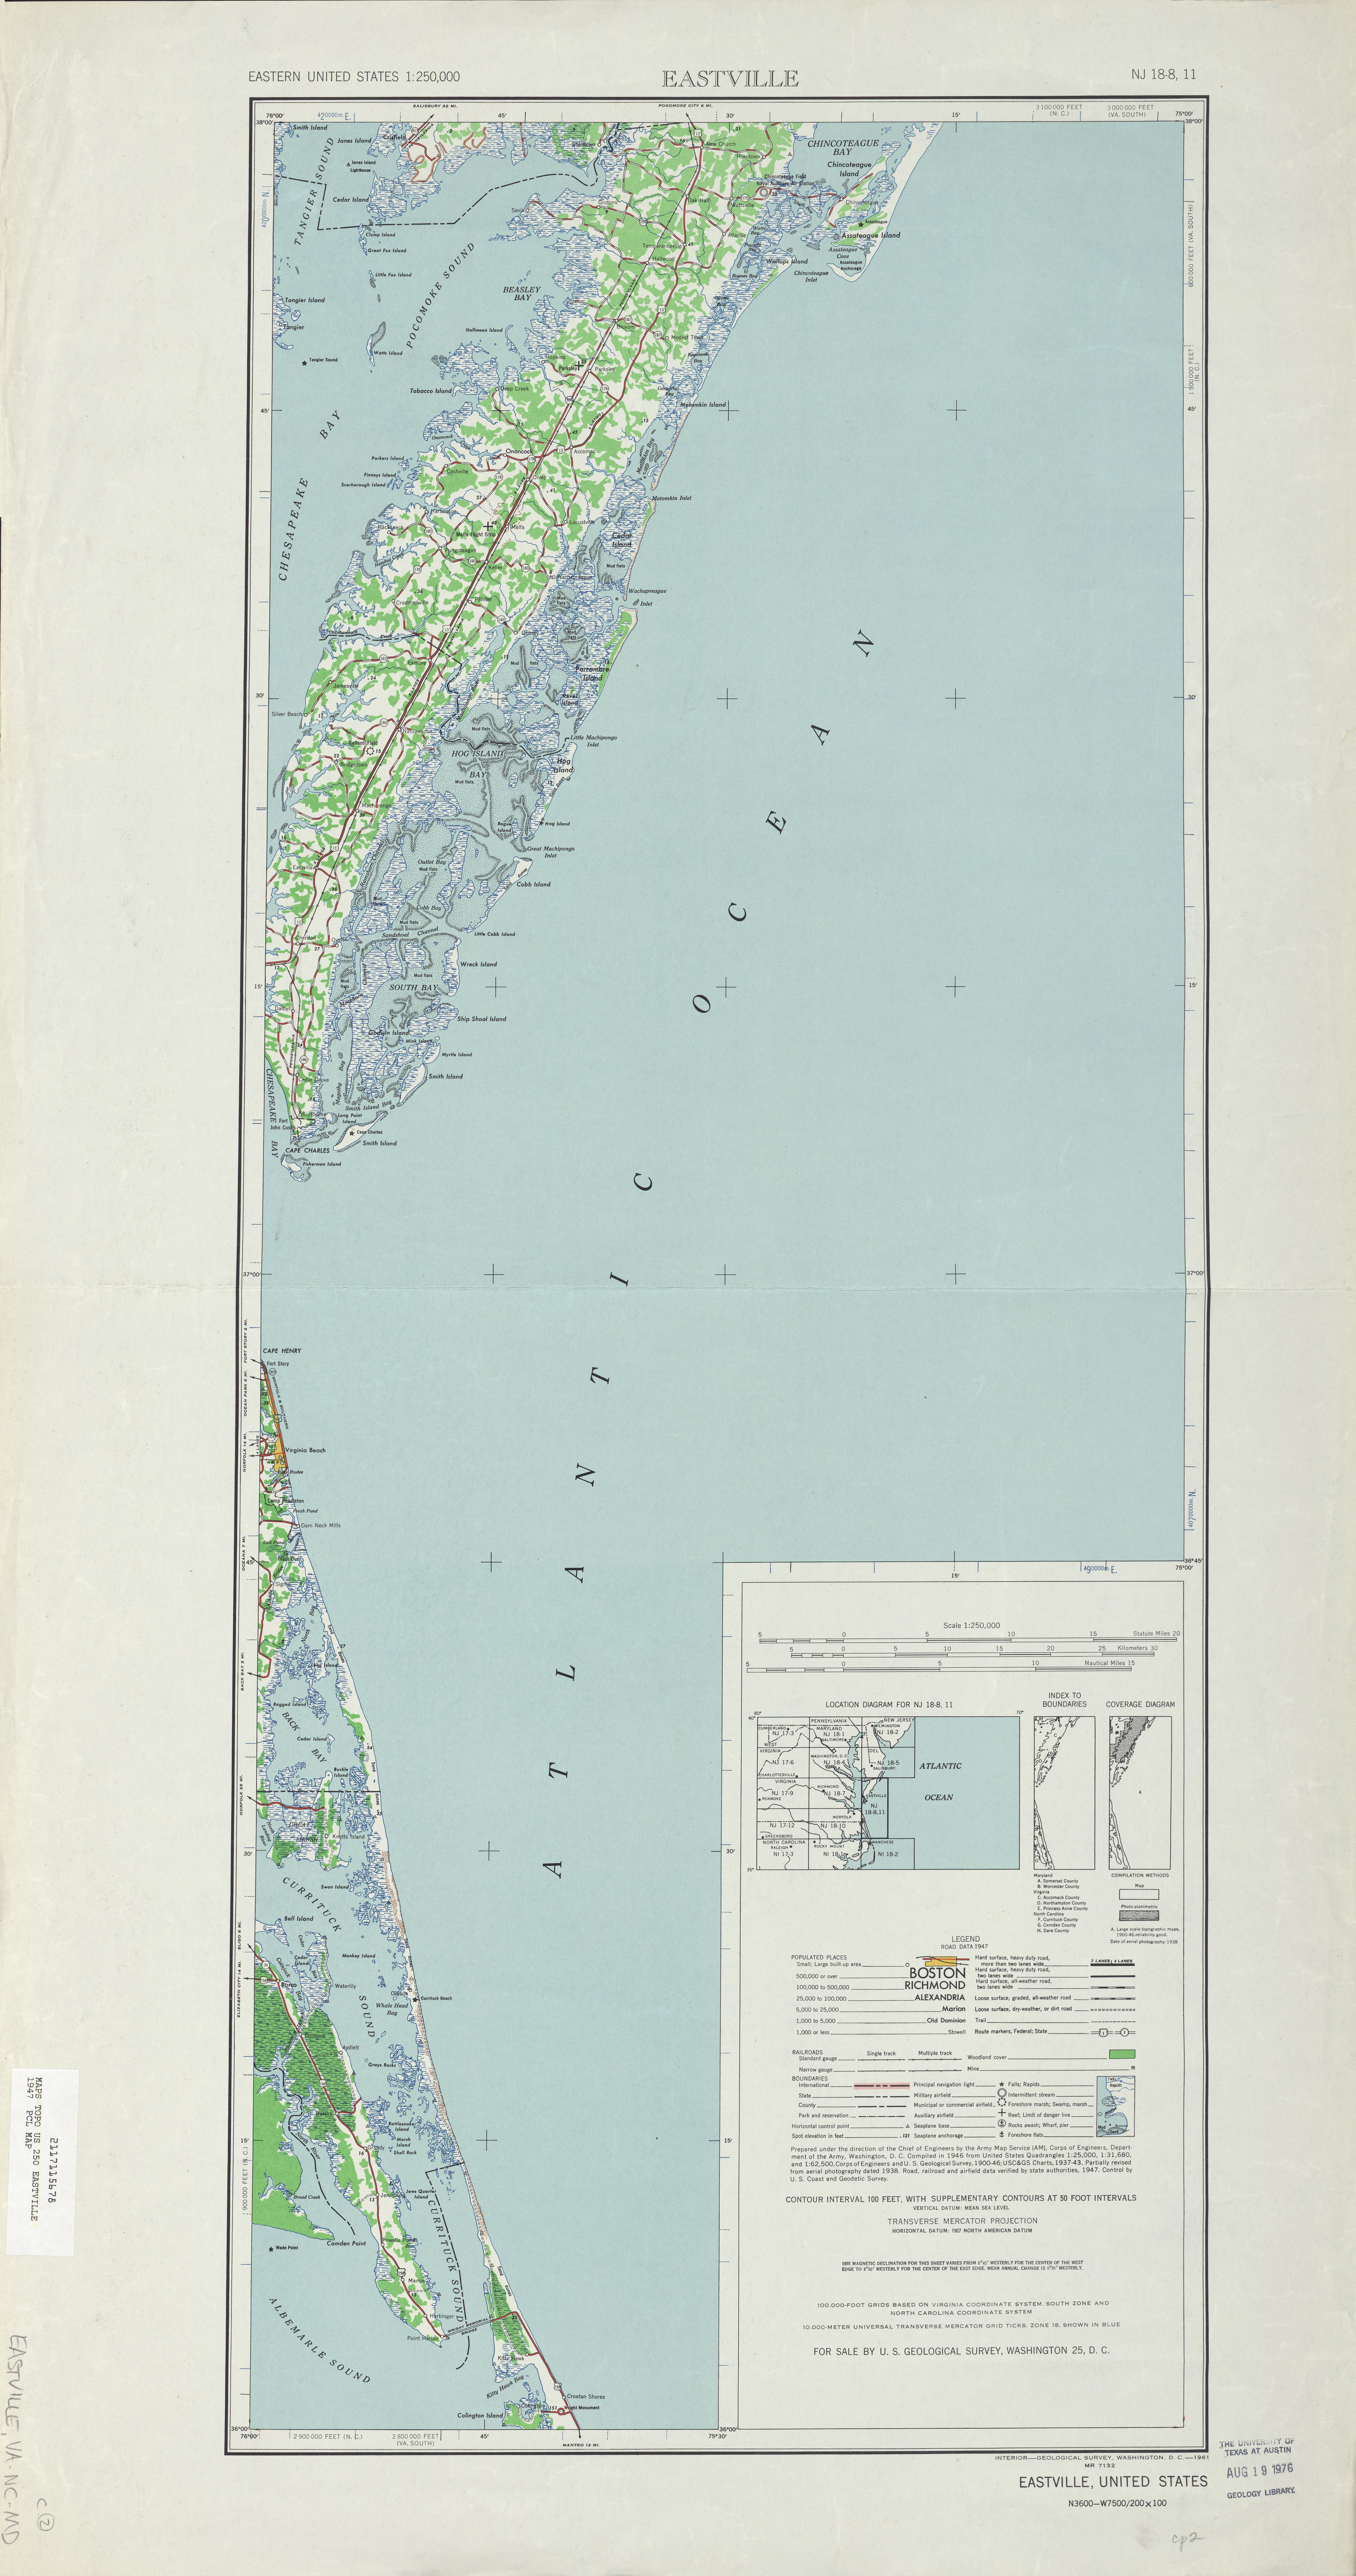 Eastville Topographic Map Sheet, United States 1947